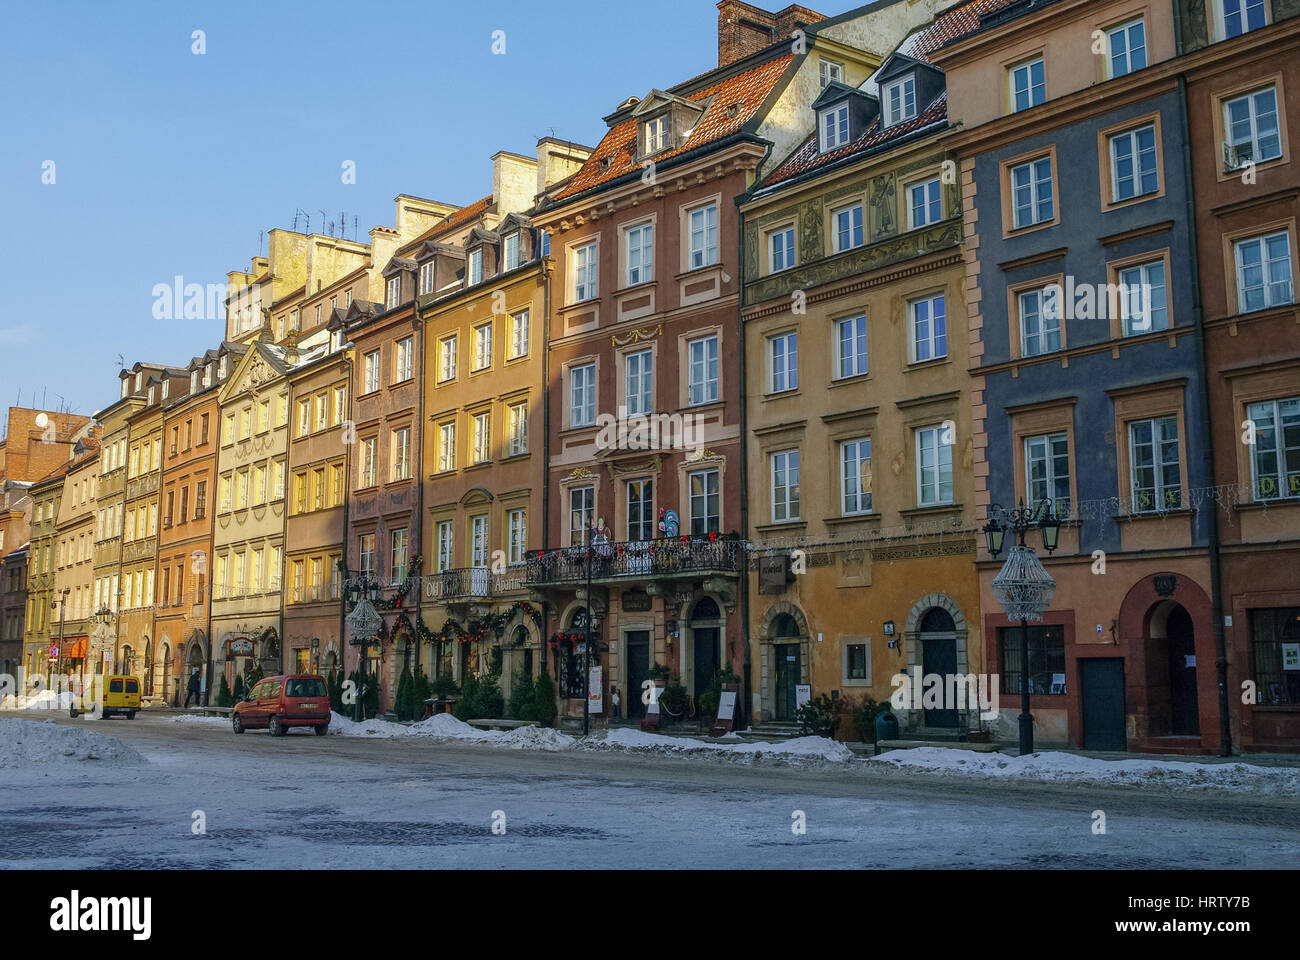 Warsaw, Poland -January 5, 2011: Houses in old town market square, Warsaw, Poland. Winter time with snow - Stock Image